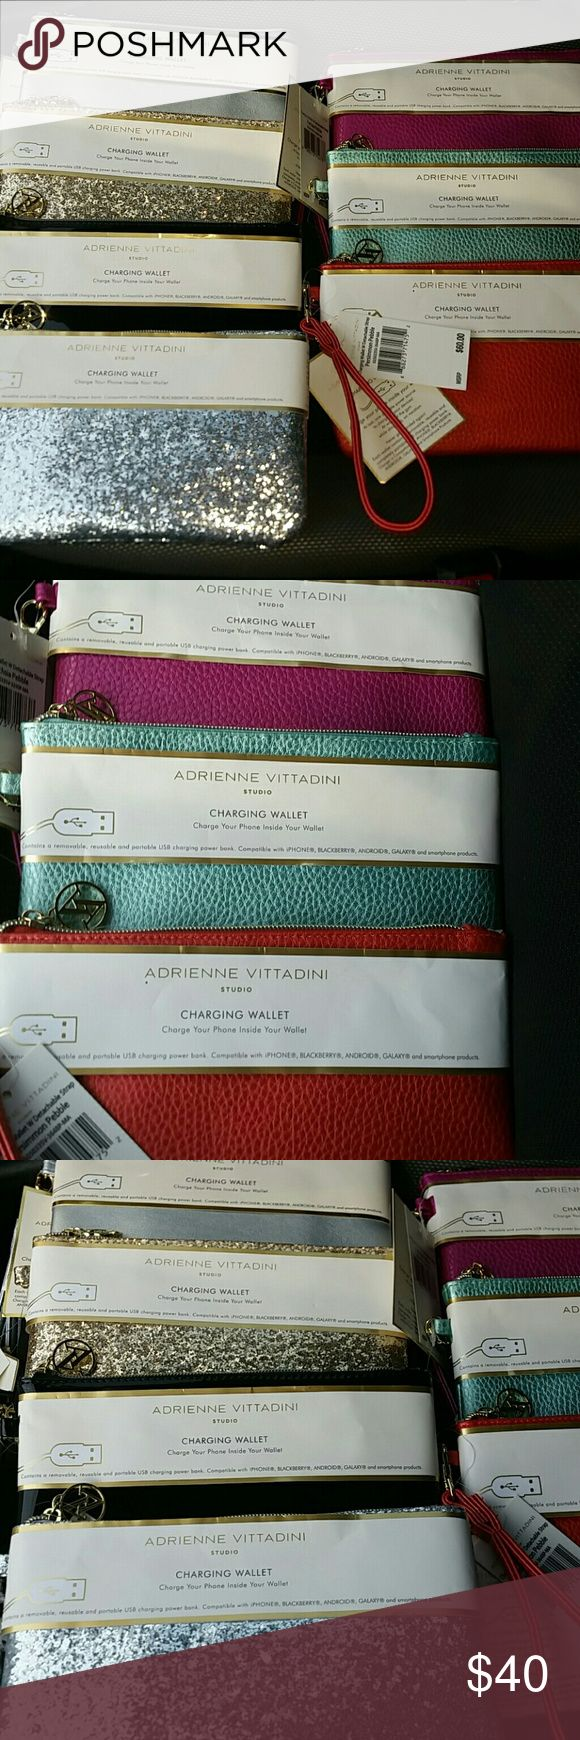 Adrienne Vittadini Phone Charger Wallet Wristlet NWT  Wristlet/wallet with built in slim card-sized USB cell phone charger for iPhone, Galaxy,  Blackberry and Android phones.   Comes with lightning adapter and detachable wrist strap.  Zip closure with AV logo pull.  Removable slim charger pack.  6 pockets for credit cards/ID.  Colors: Fuchsia Pebble (matte metallic) Ice Blue Pebble ( aqua matte metallic) Persimmon Pebble (matte metallic) Silver Smooth (matte) Gold Glitter Black Patent Silver…